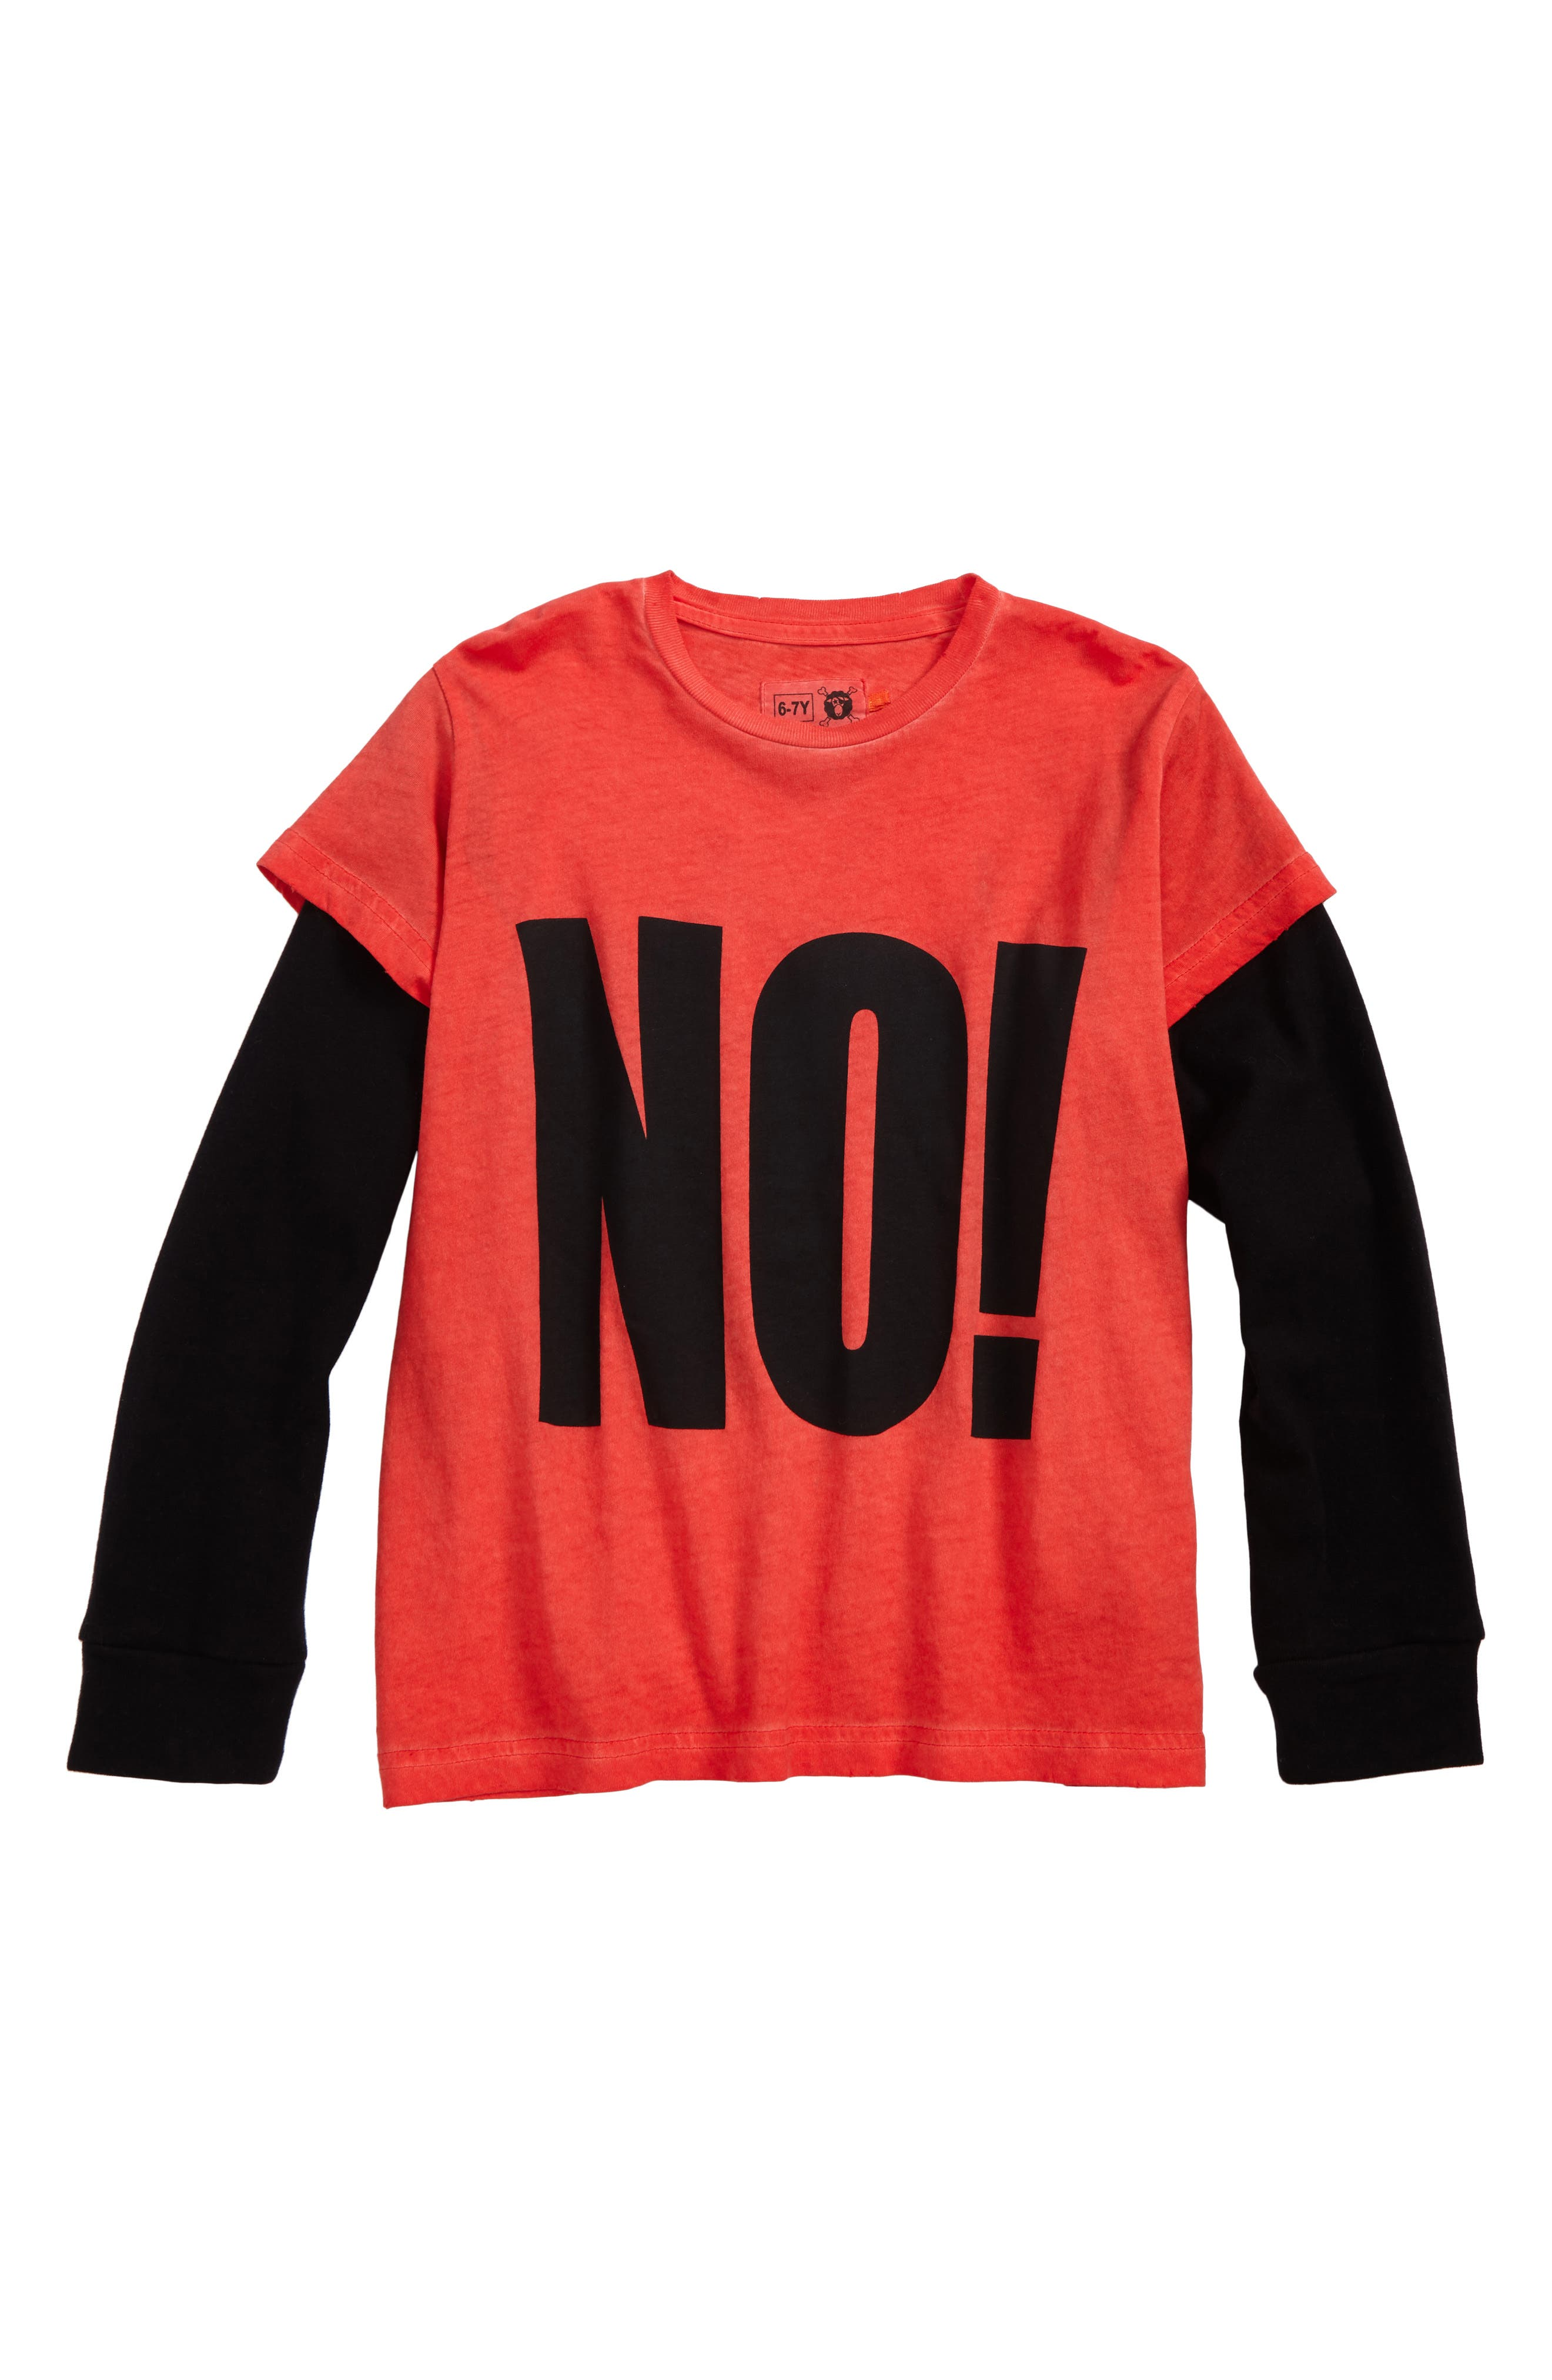 No! Graphic T-Shirt,                         Main,                         color, Dyed Red